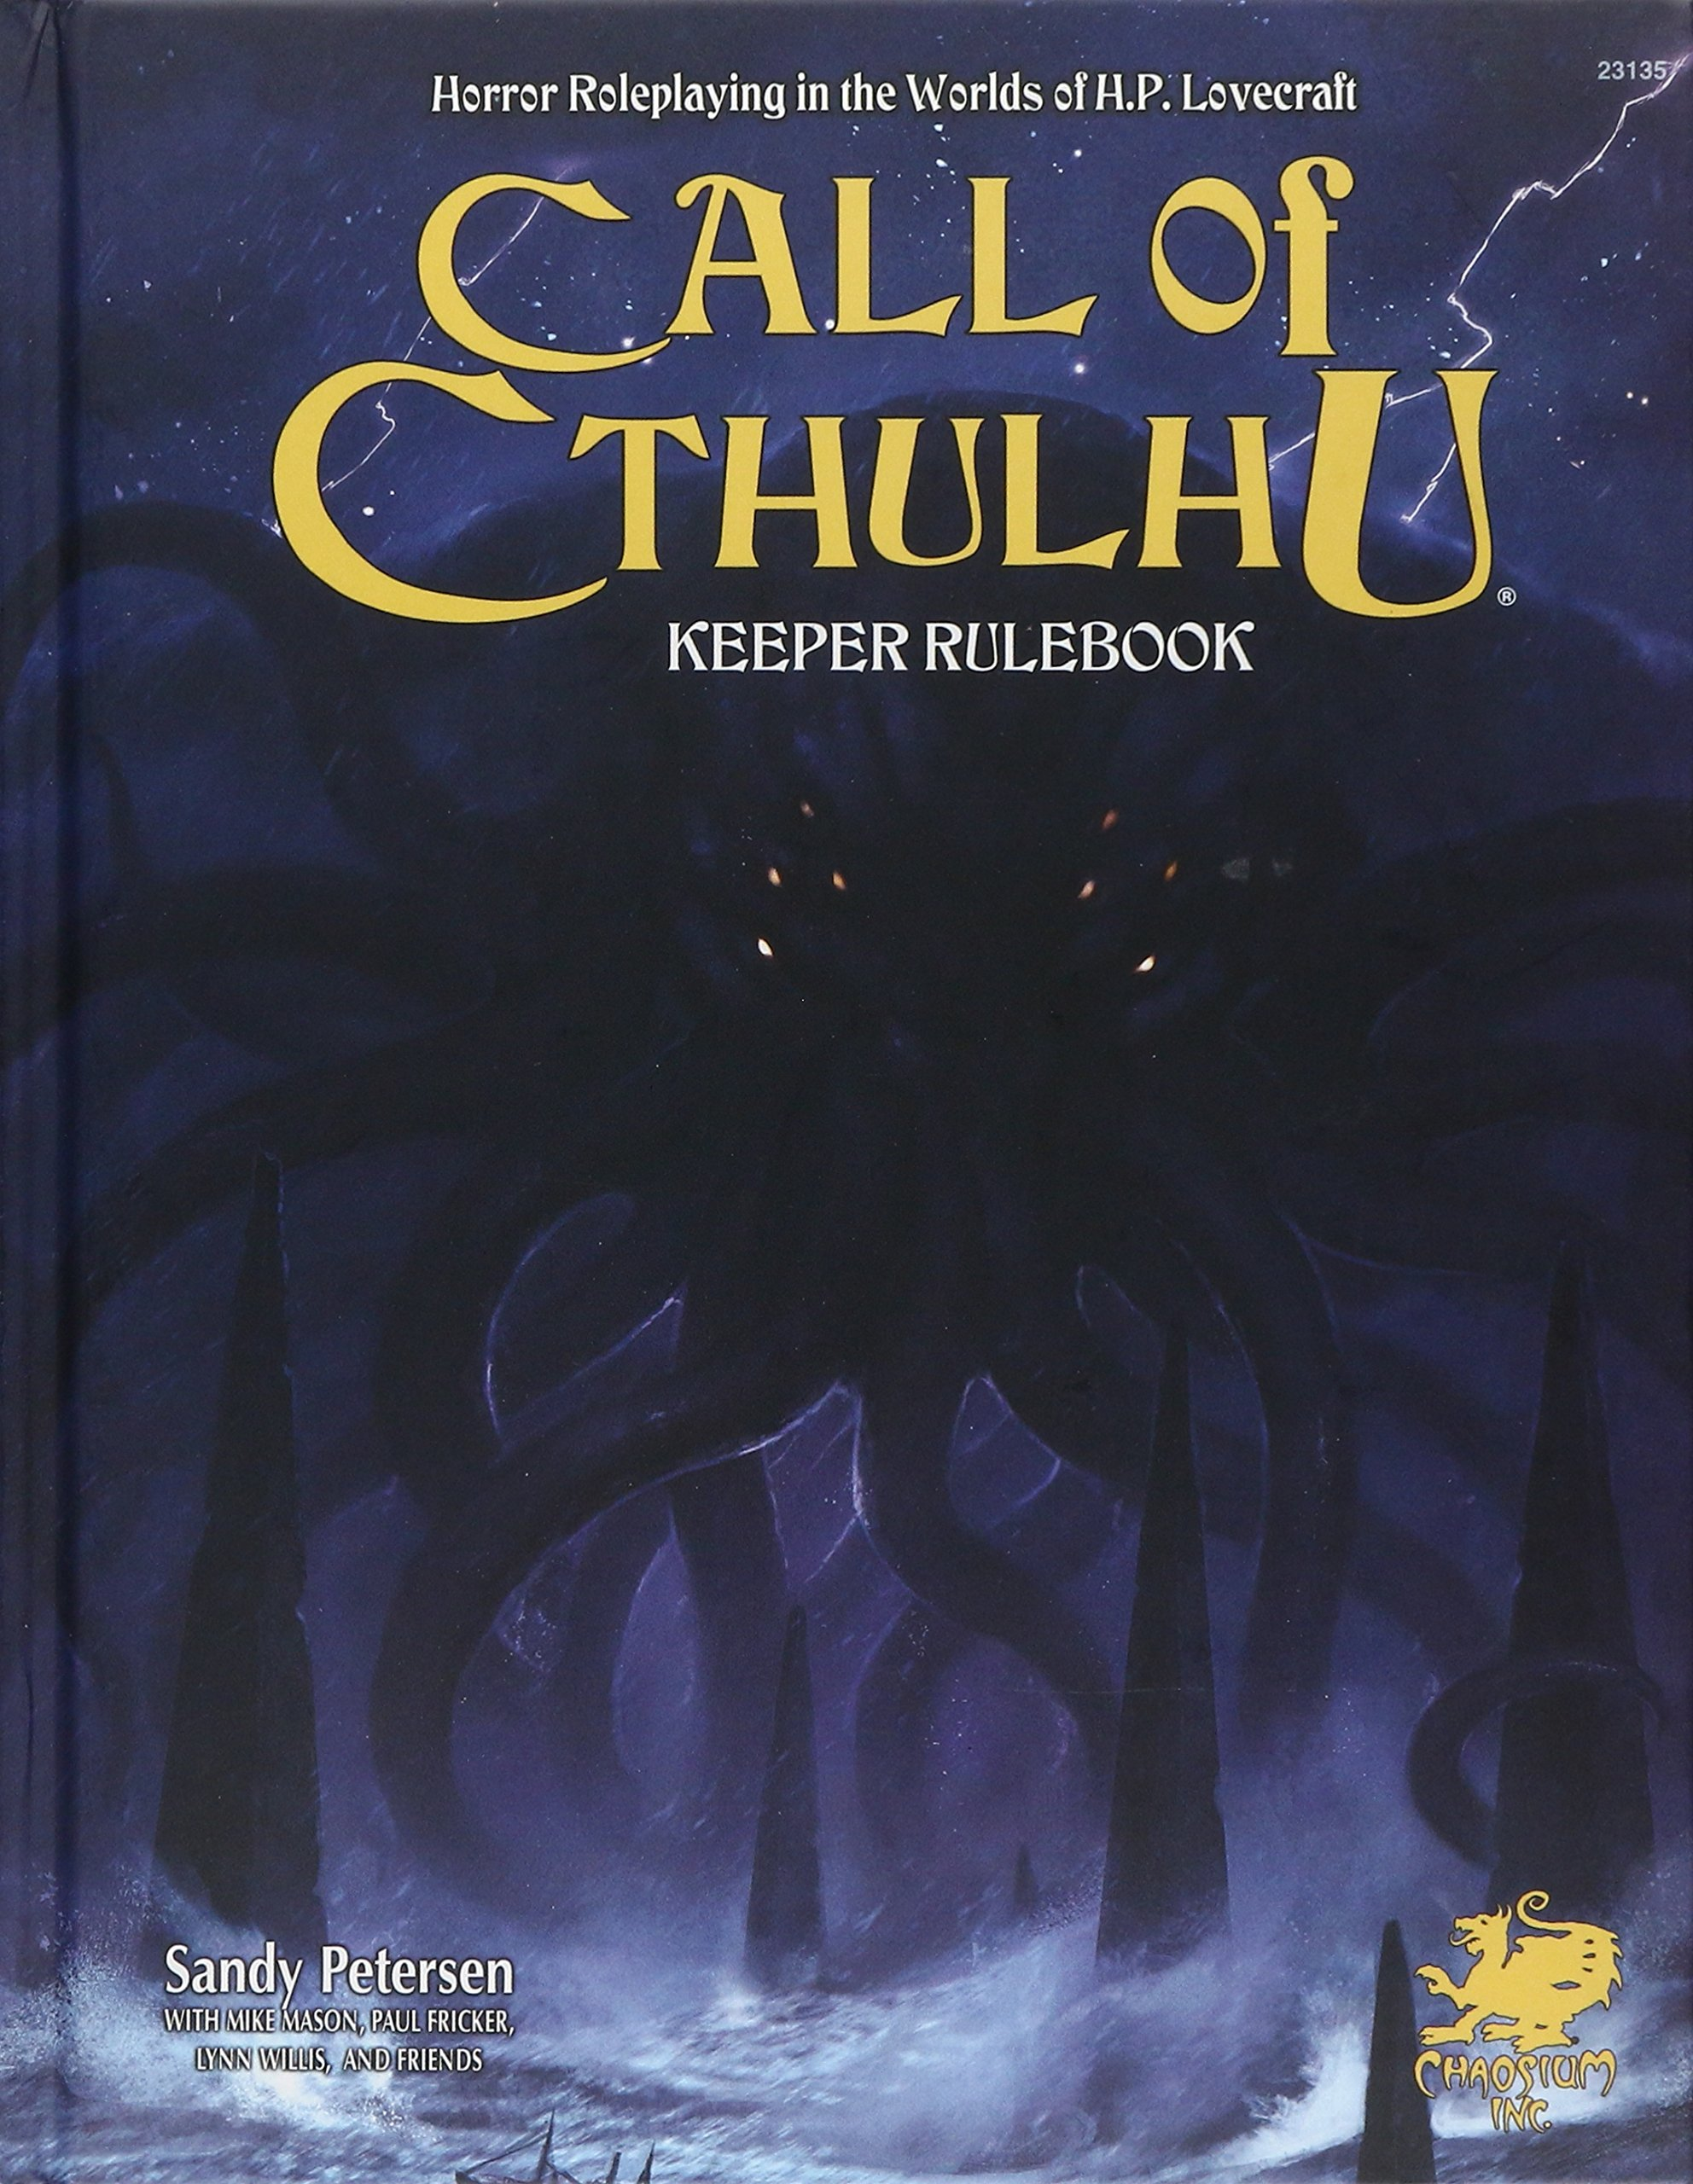 Call of Cthulhu Rpg Keeper Rulebook: Horror Roleplaying in the Worlds of H.p. Lovecraft (Call of Cthulhu Roleplaying) by Chaosium, Inc.